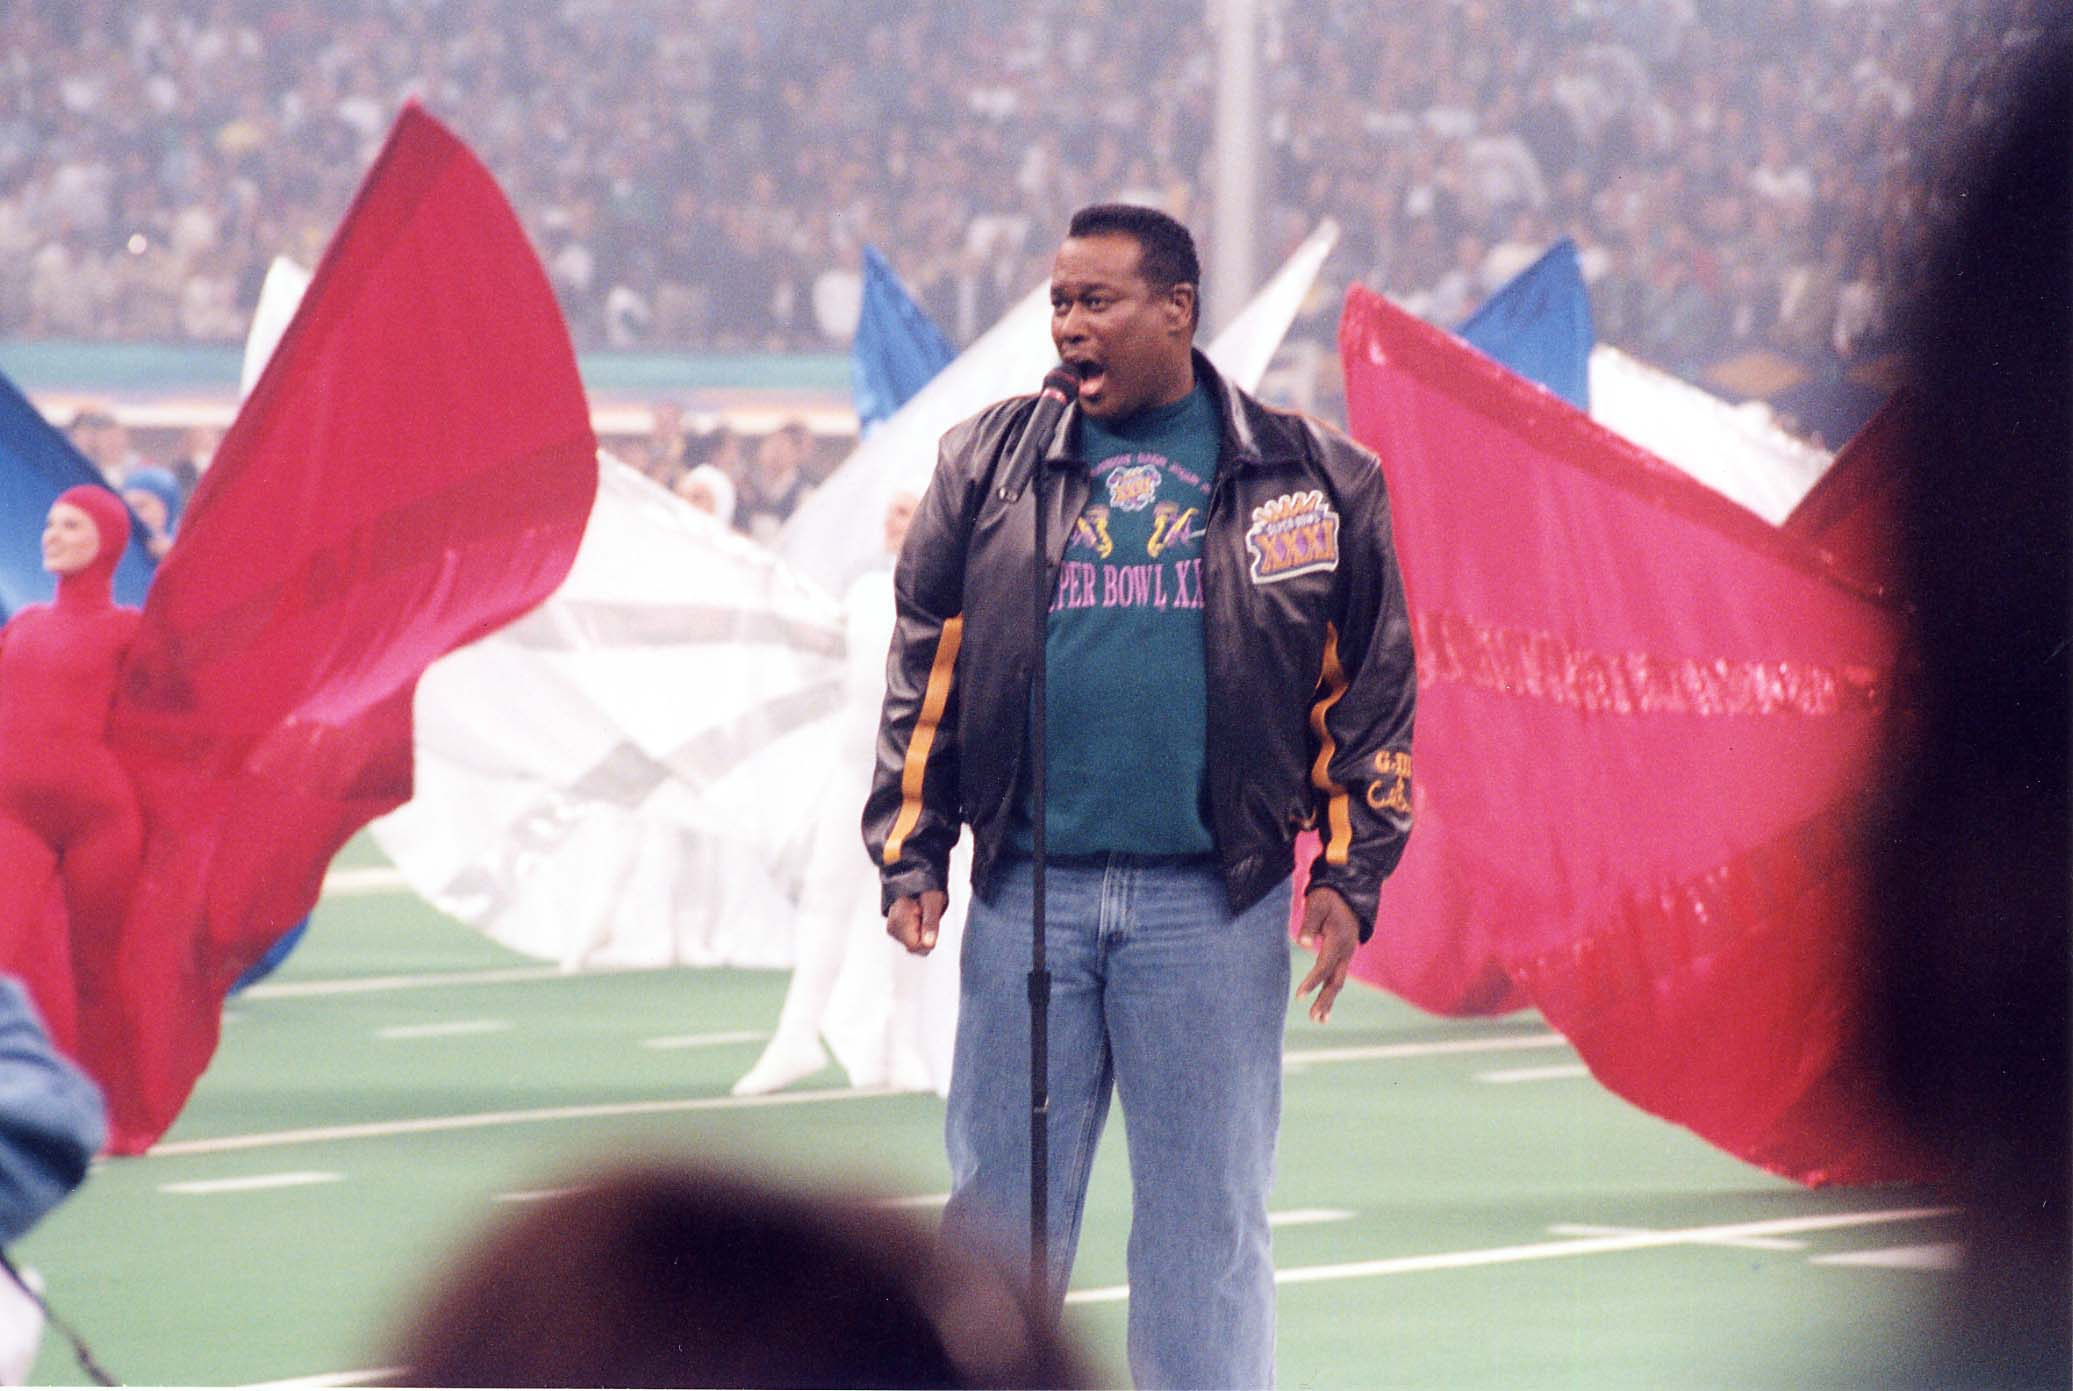 Luther Vandross at the 1997 Super Bowl in New Orleans. | Photo: Getty Images.